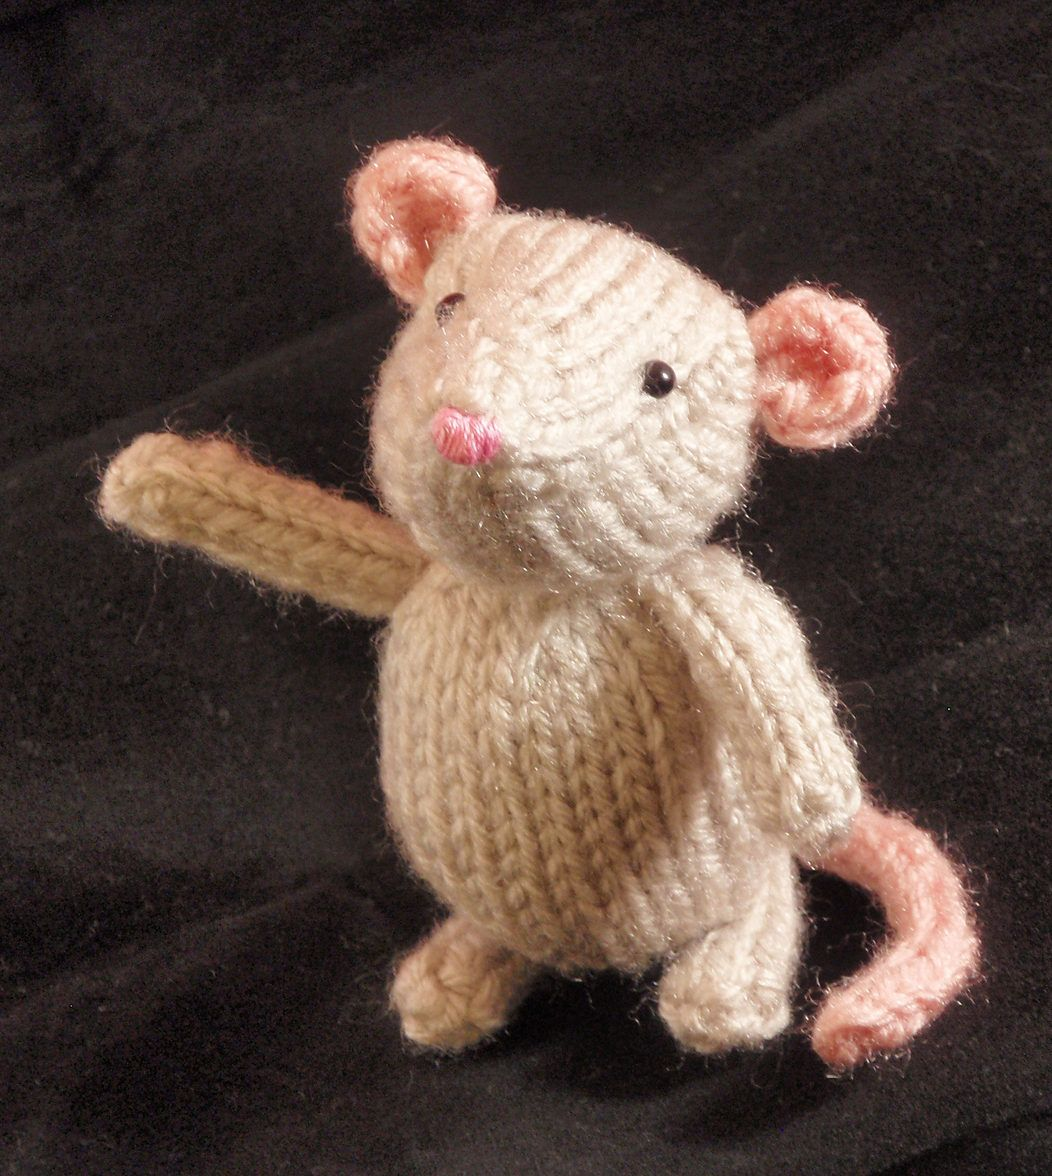 Knitting Toys Patterns Free : Free knitting pattern for marisol mouse this teacup